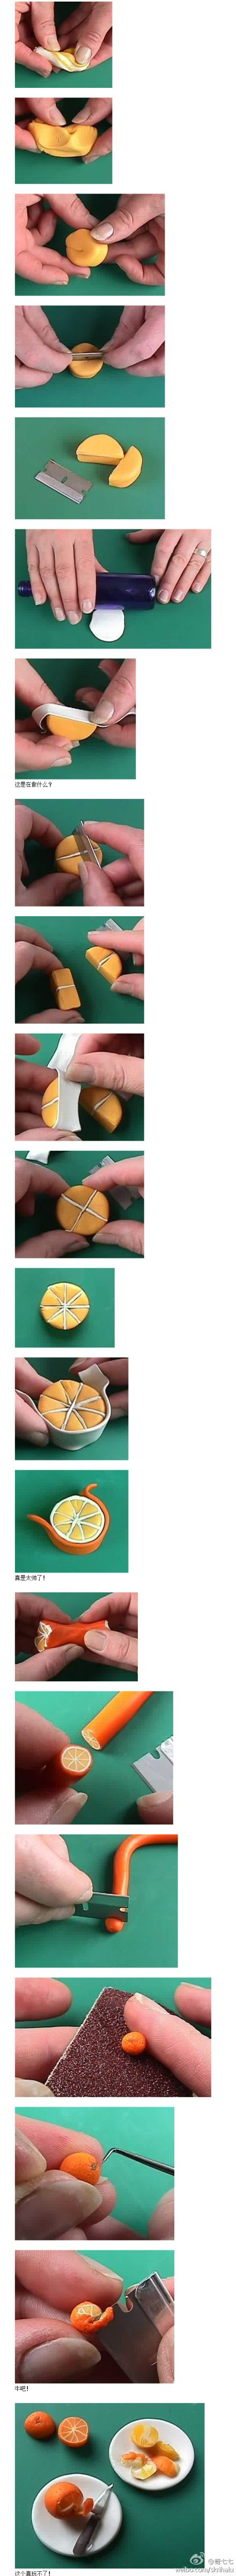 Polymer Clay Oranges tutorial